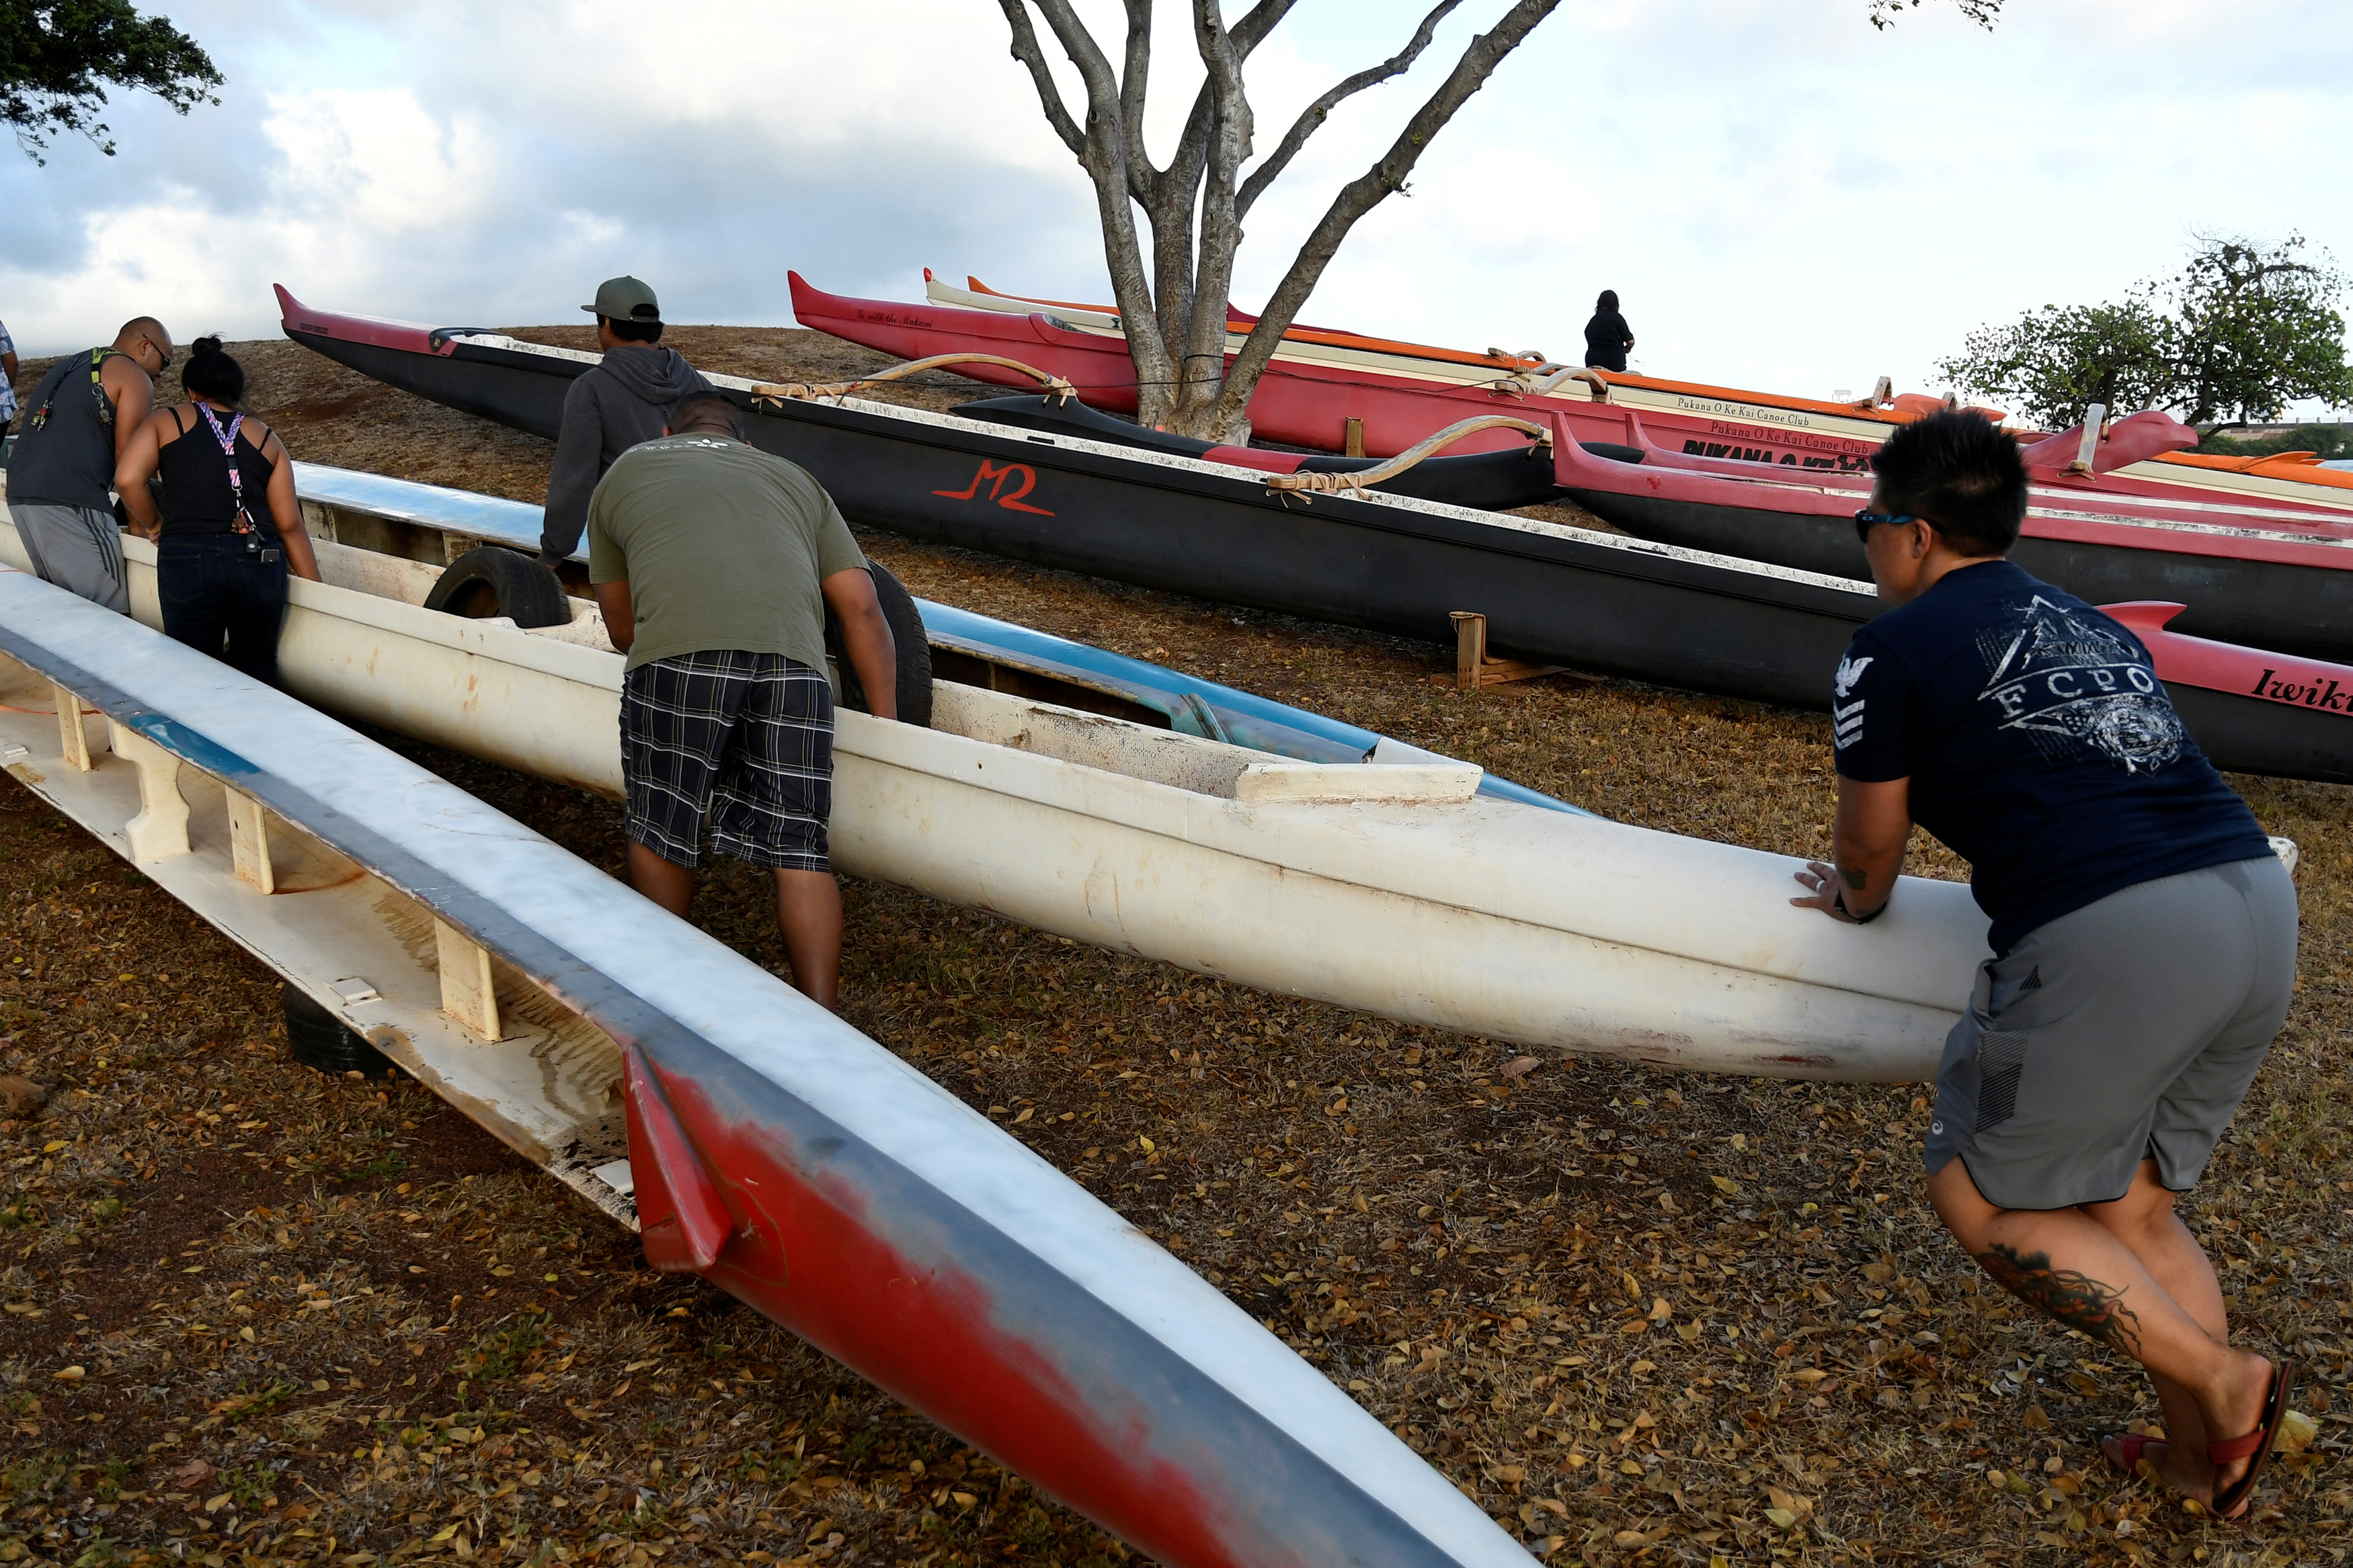 Members of the Alapahoe outrigger canoe club move their canoes off the beach to higher ground as Hurricane Lane approaches Honolulu, Hawaii, U.S. August 21, 2018. REUTERS/Hugh Gentry